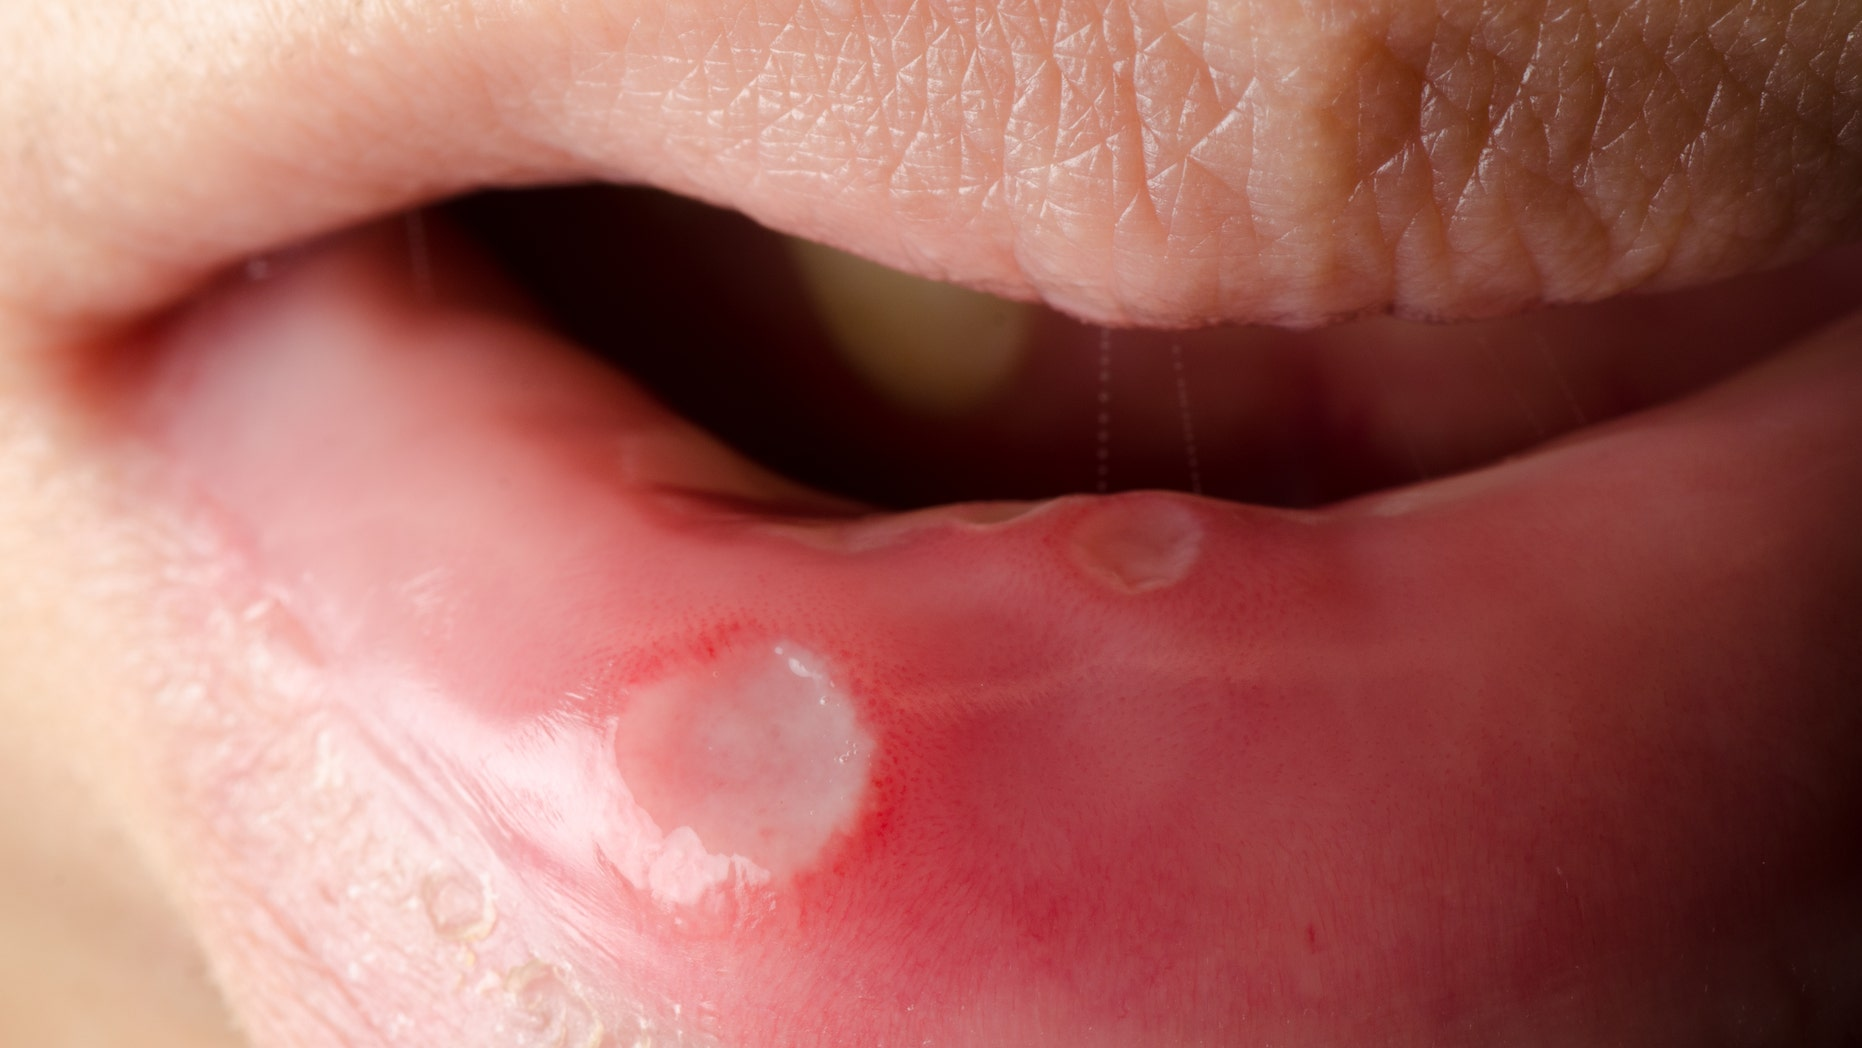 How To Get Rid Of Canker Sores And Prevent Them From